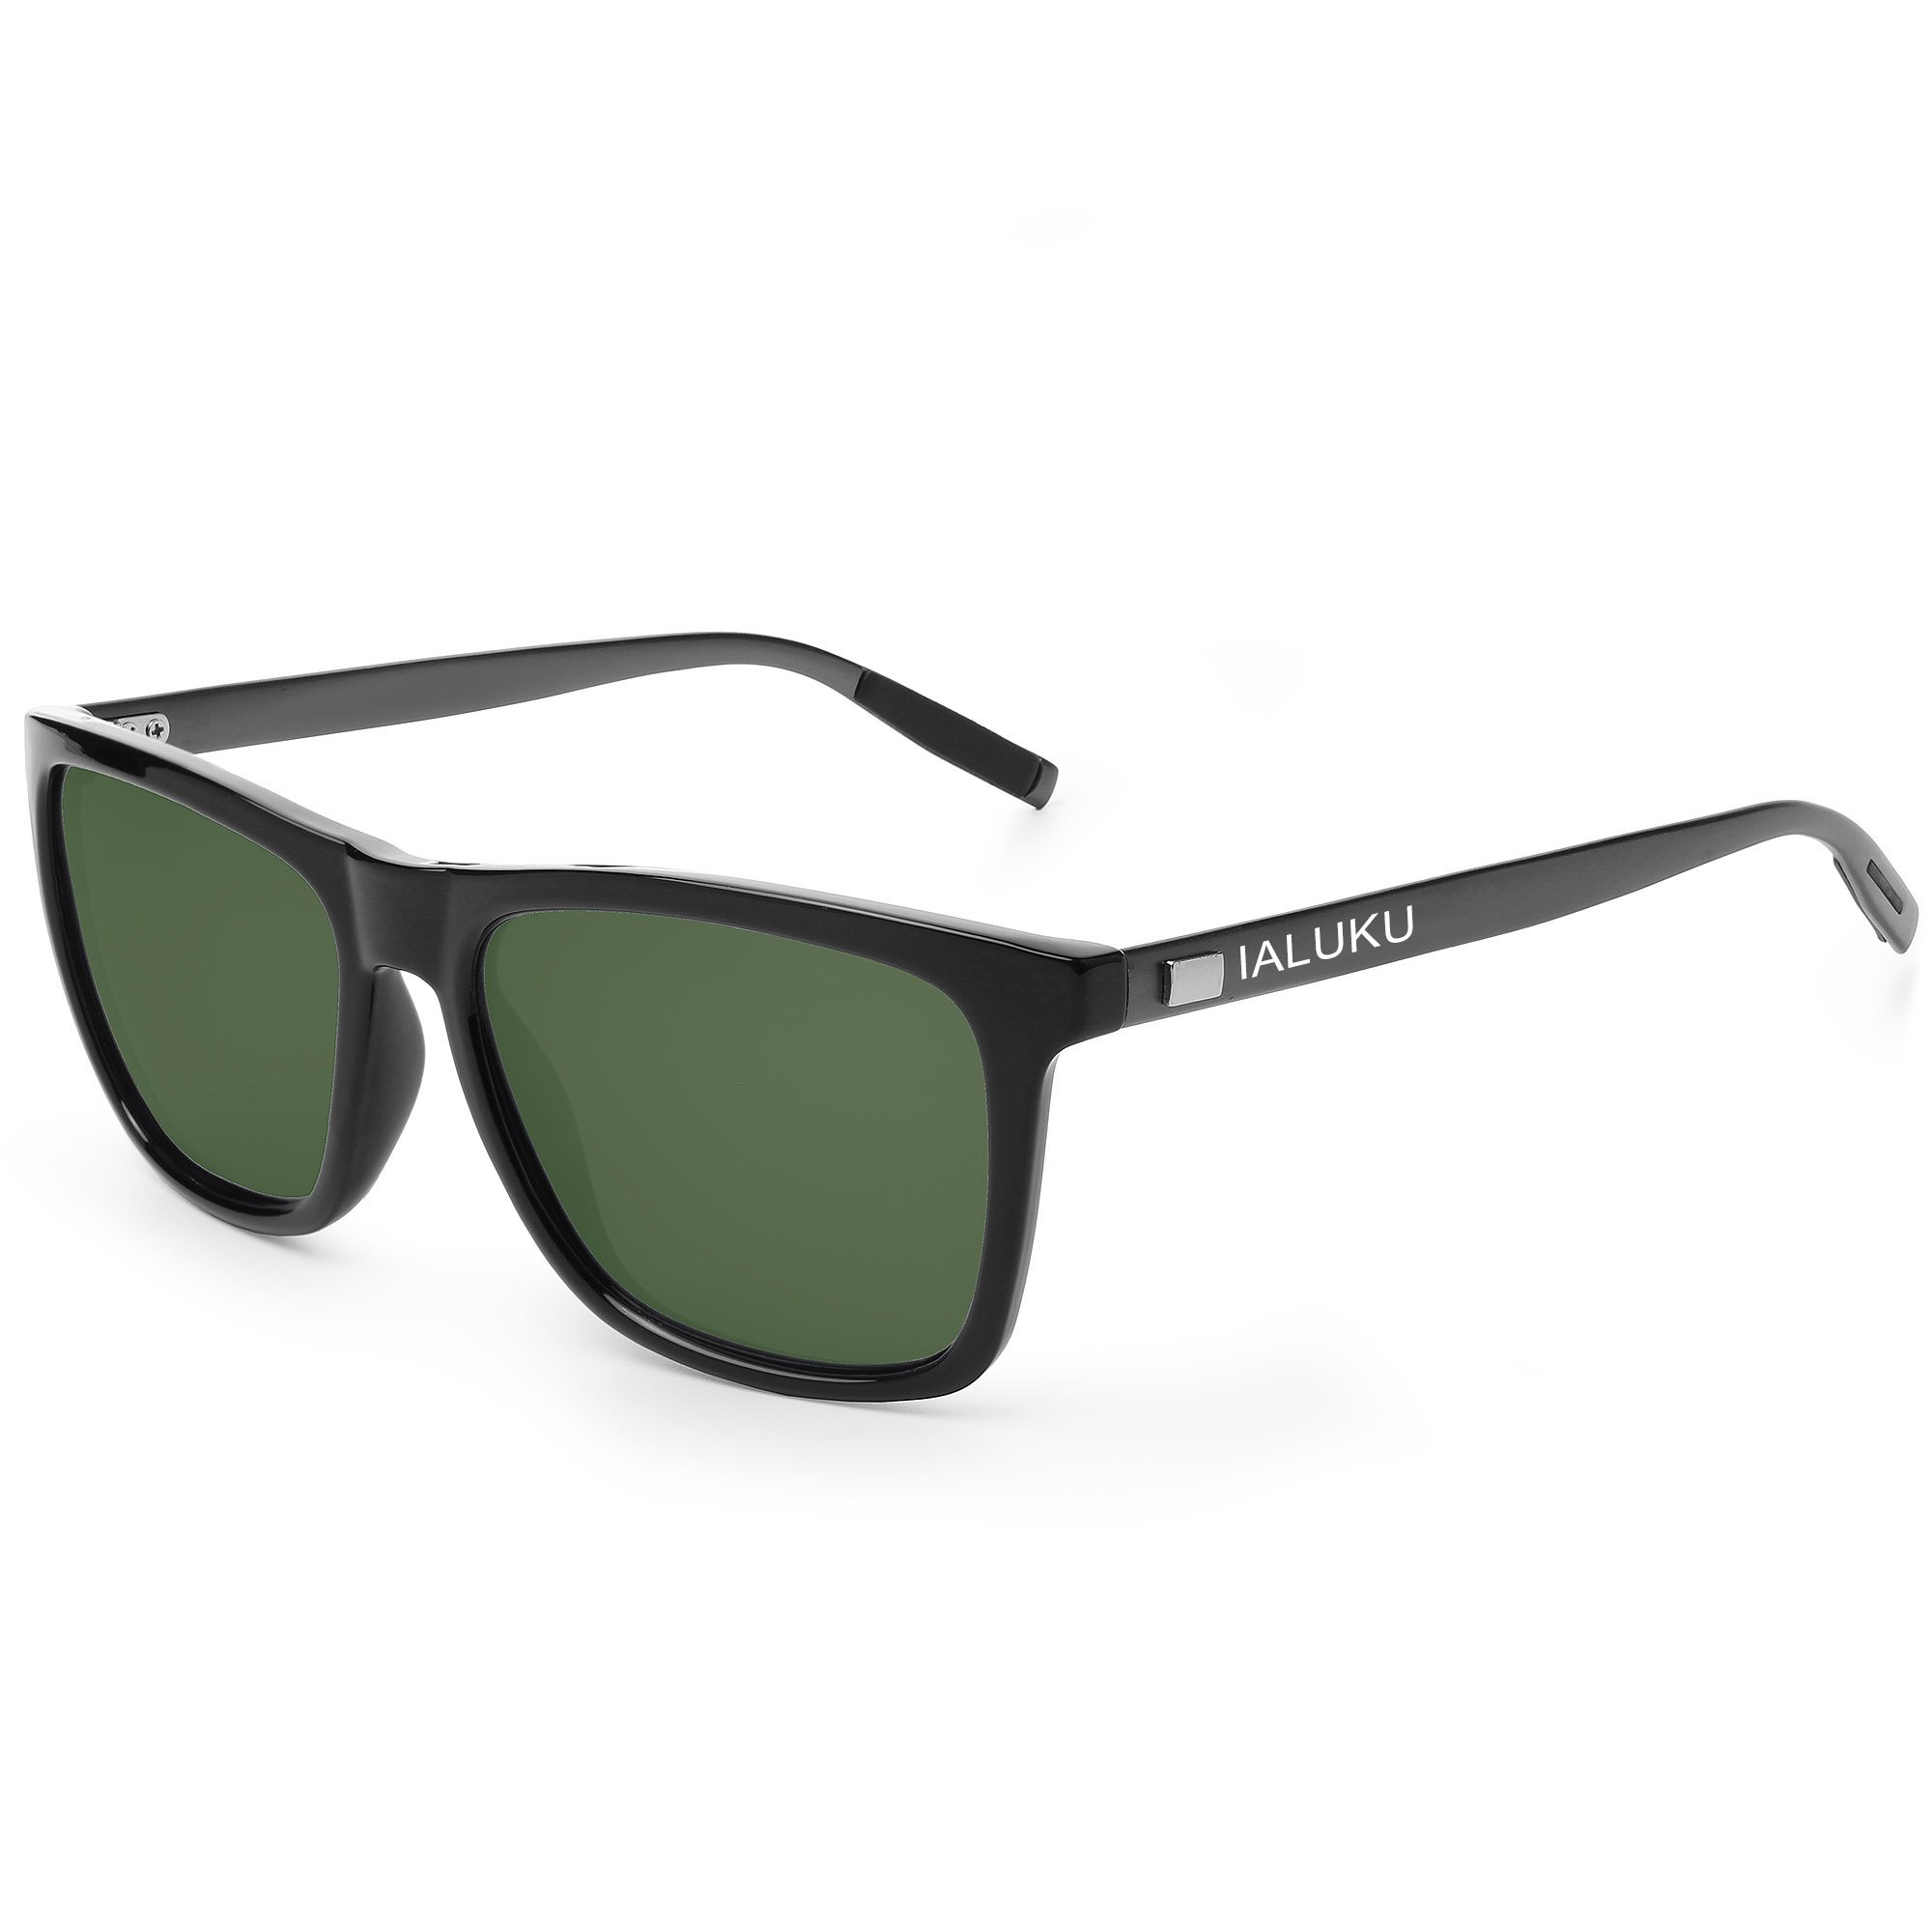 IALUKU Wayfarer Sunglasses Polarized Women Men Mirrored UV400 Full Frame (Black / Green, 60)